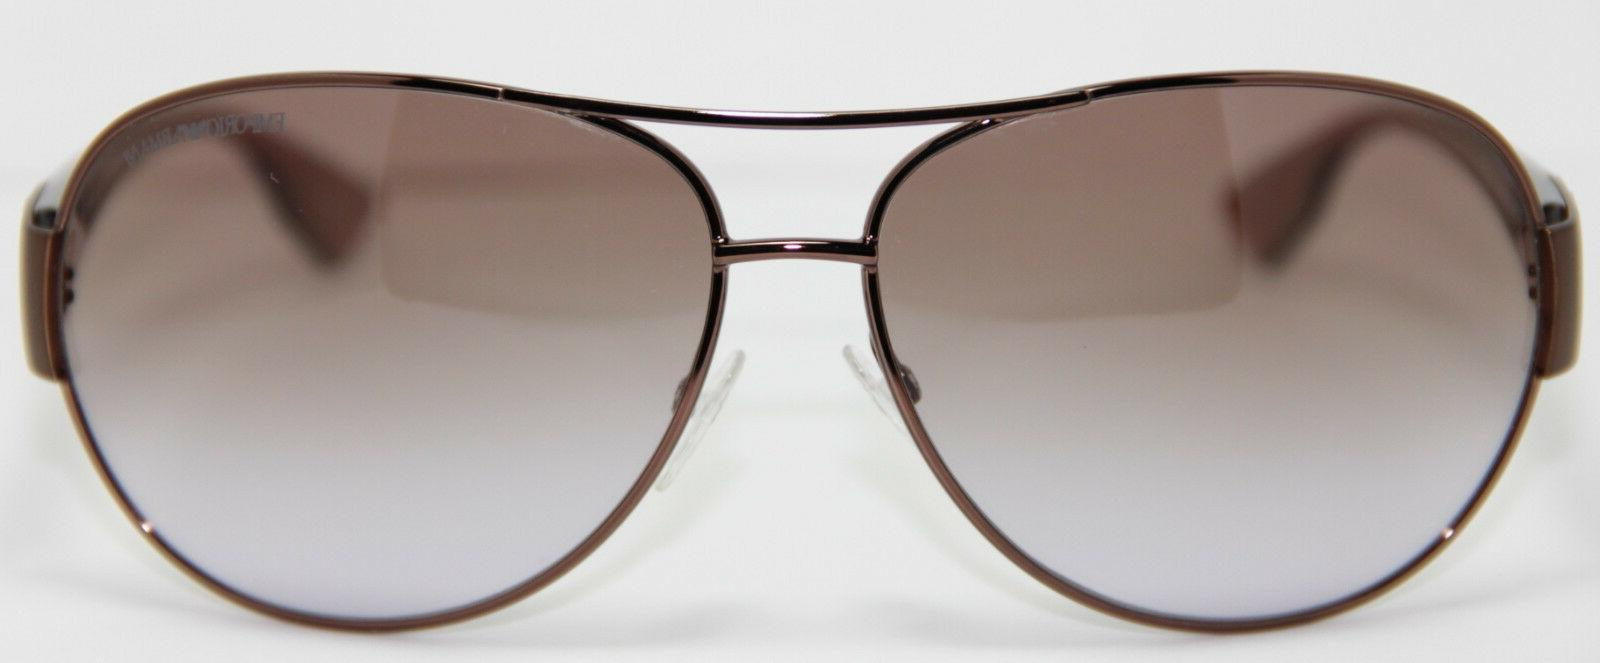 New Emporio Armani Men's Women's Sunglasses EA9691 Y04 Brown